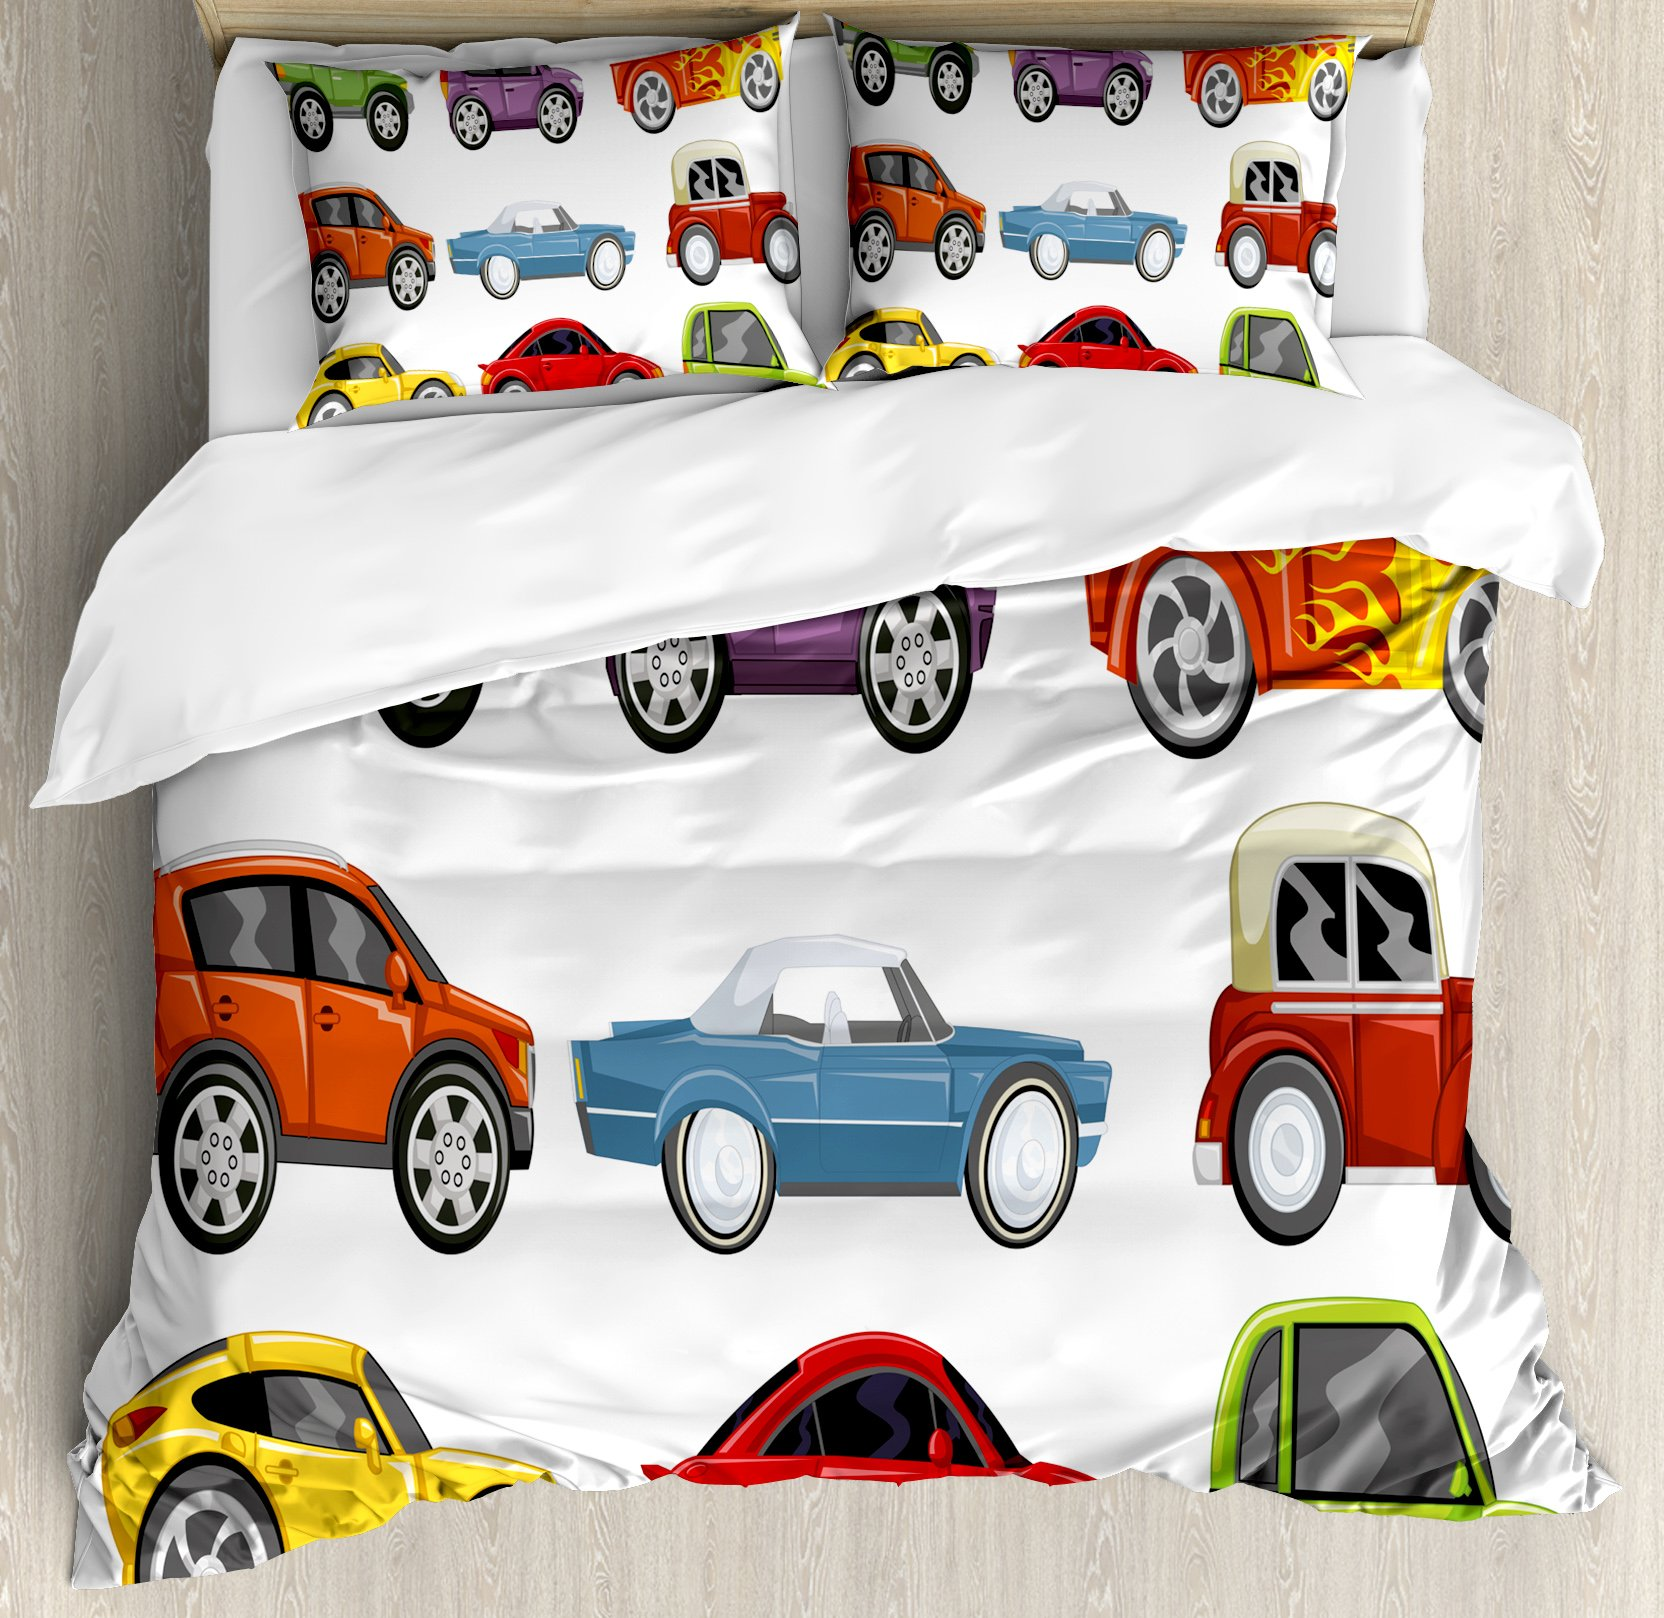 Boy's Room Duvet Cover Set King Size by Lunarable, Race Cars Monster Truck Classics Urban Jeep Artistic Speed Automobiles Print, Decorative 3 Piece Bedding Set with 2 Pillow Shams, Multicolor by Lunarable